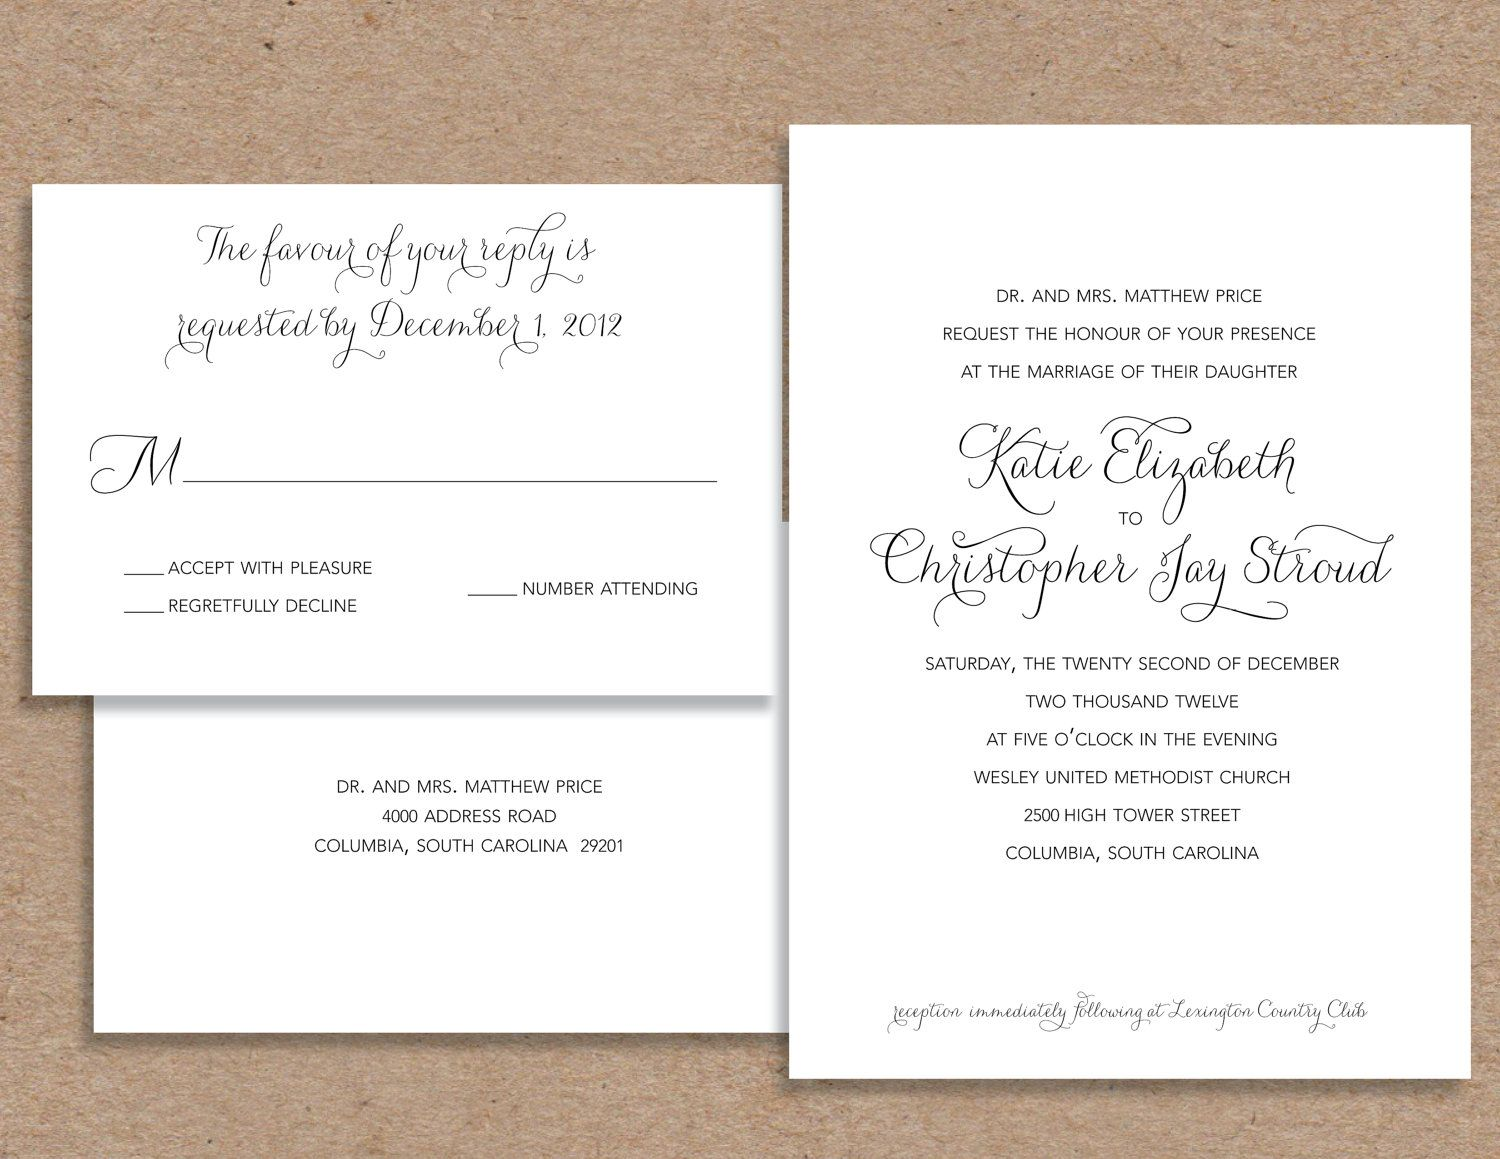 Wording Of Wedding Invitations: Wording For Couple Wedding Invitation